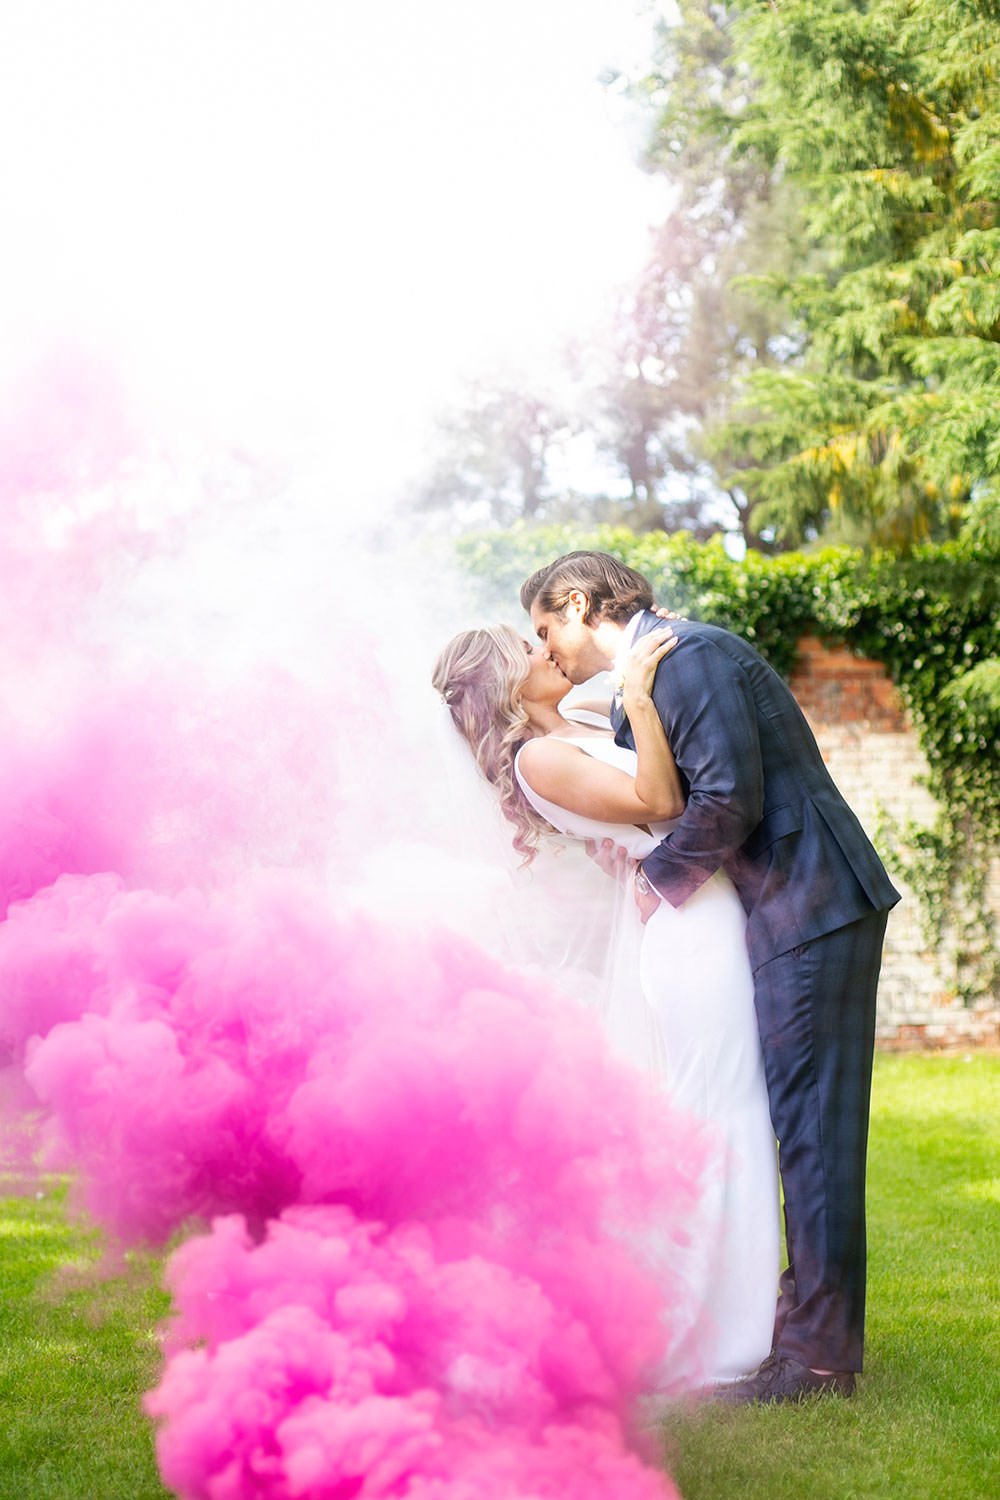 Smoke Bomb Bride bridal Fitted Fishtail Dress Gown Checked Suit Groom Countryside Barn Wedding Katrina Matthews Photography